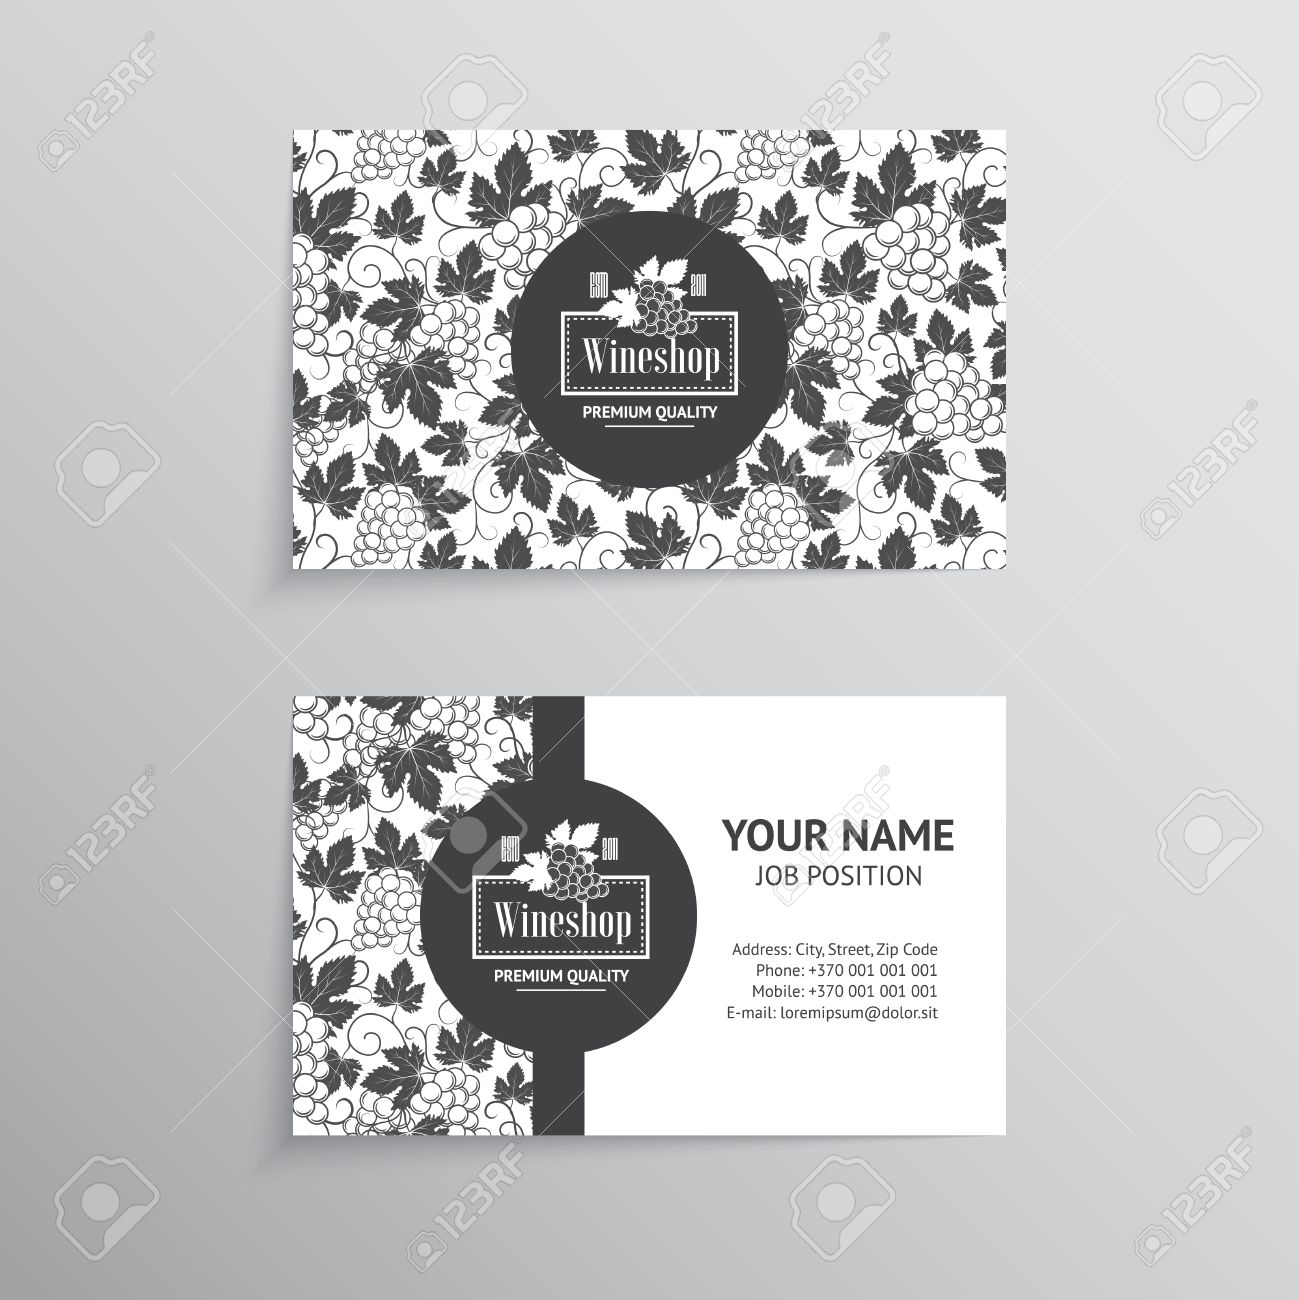 Set of business cards templates for wine company royalty free set of business cards templates for wine company stock vector 38958857 flashek Gallery